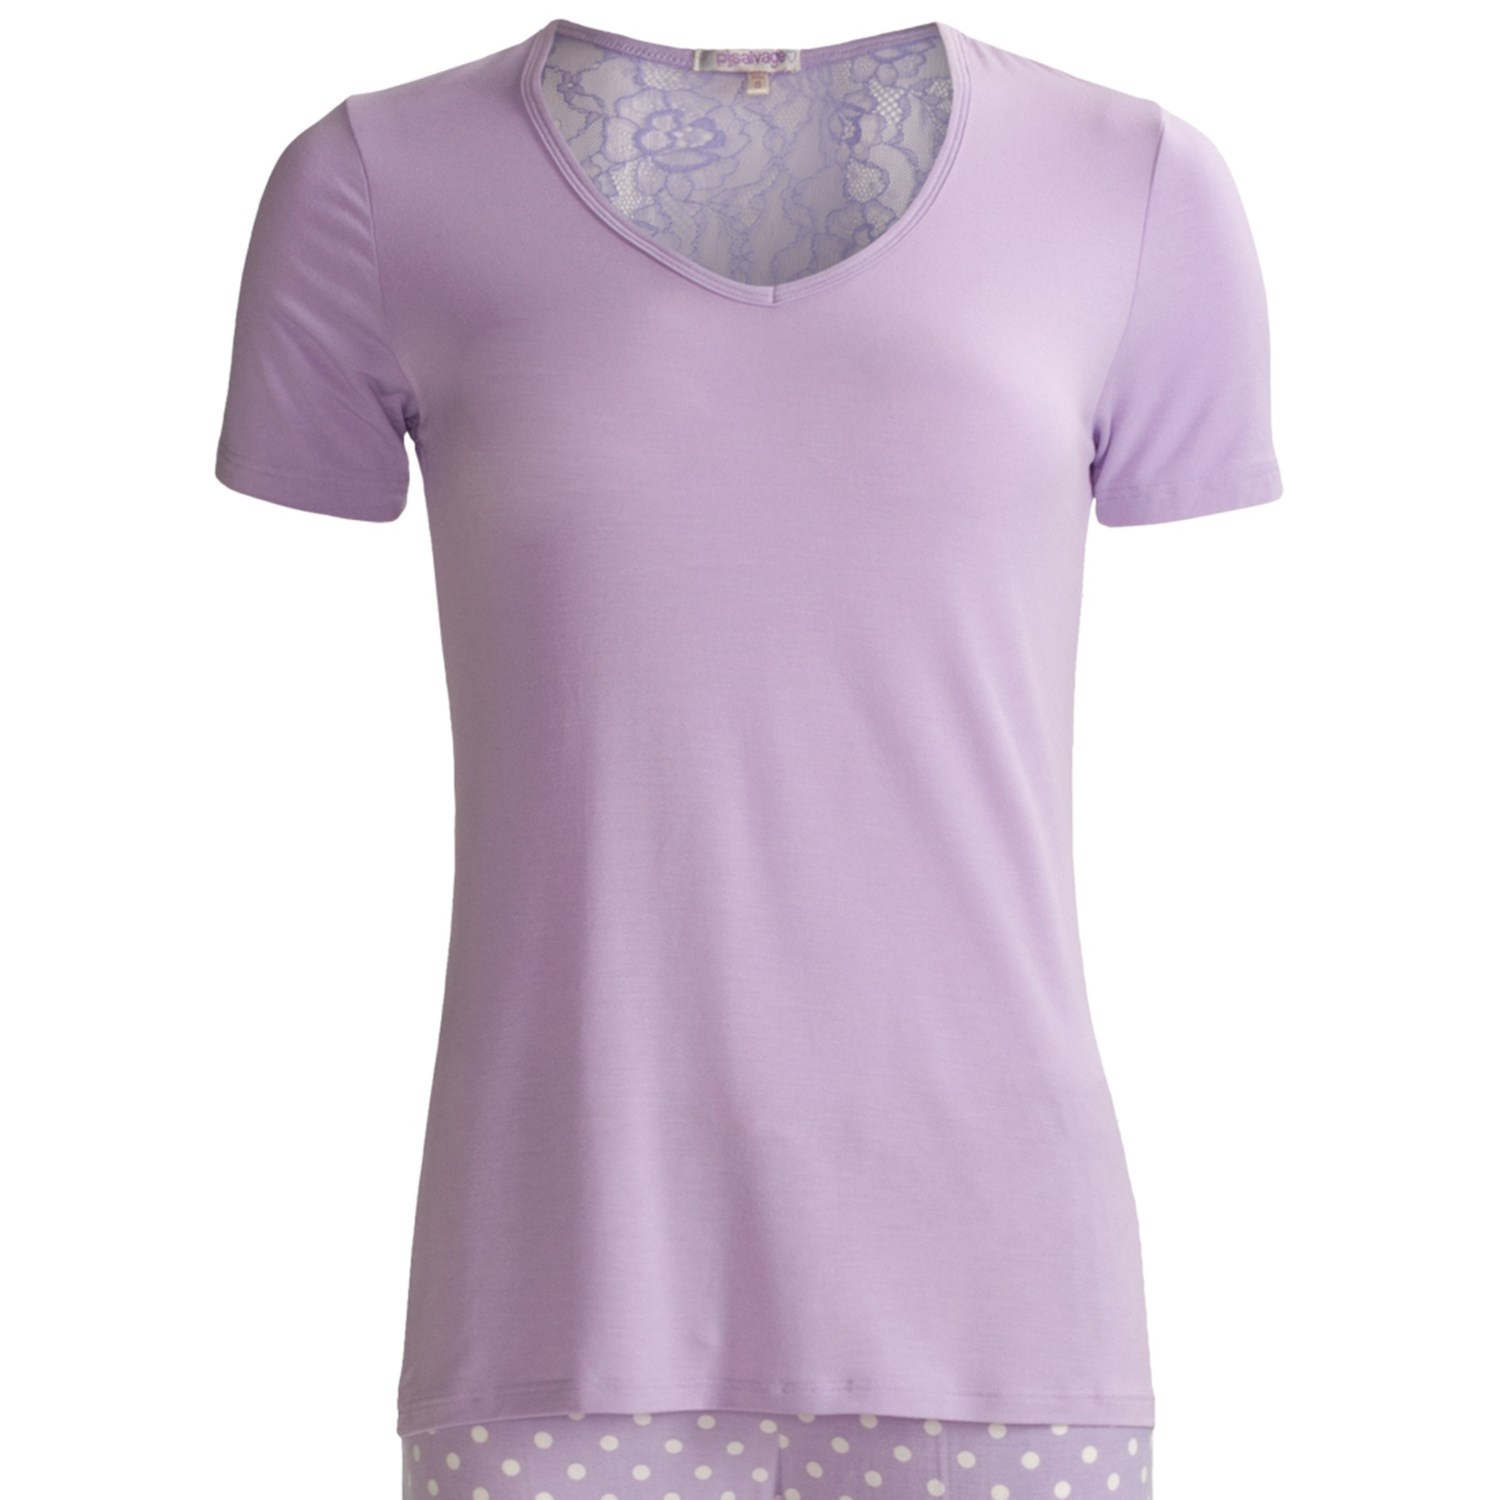 Womens Loungewear. Comfort is key when it comes to women's loungewear. Enjoy your time off in the comfiest of clothing by shopping the activewear selection for loungewear.